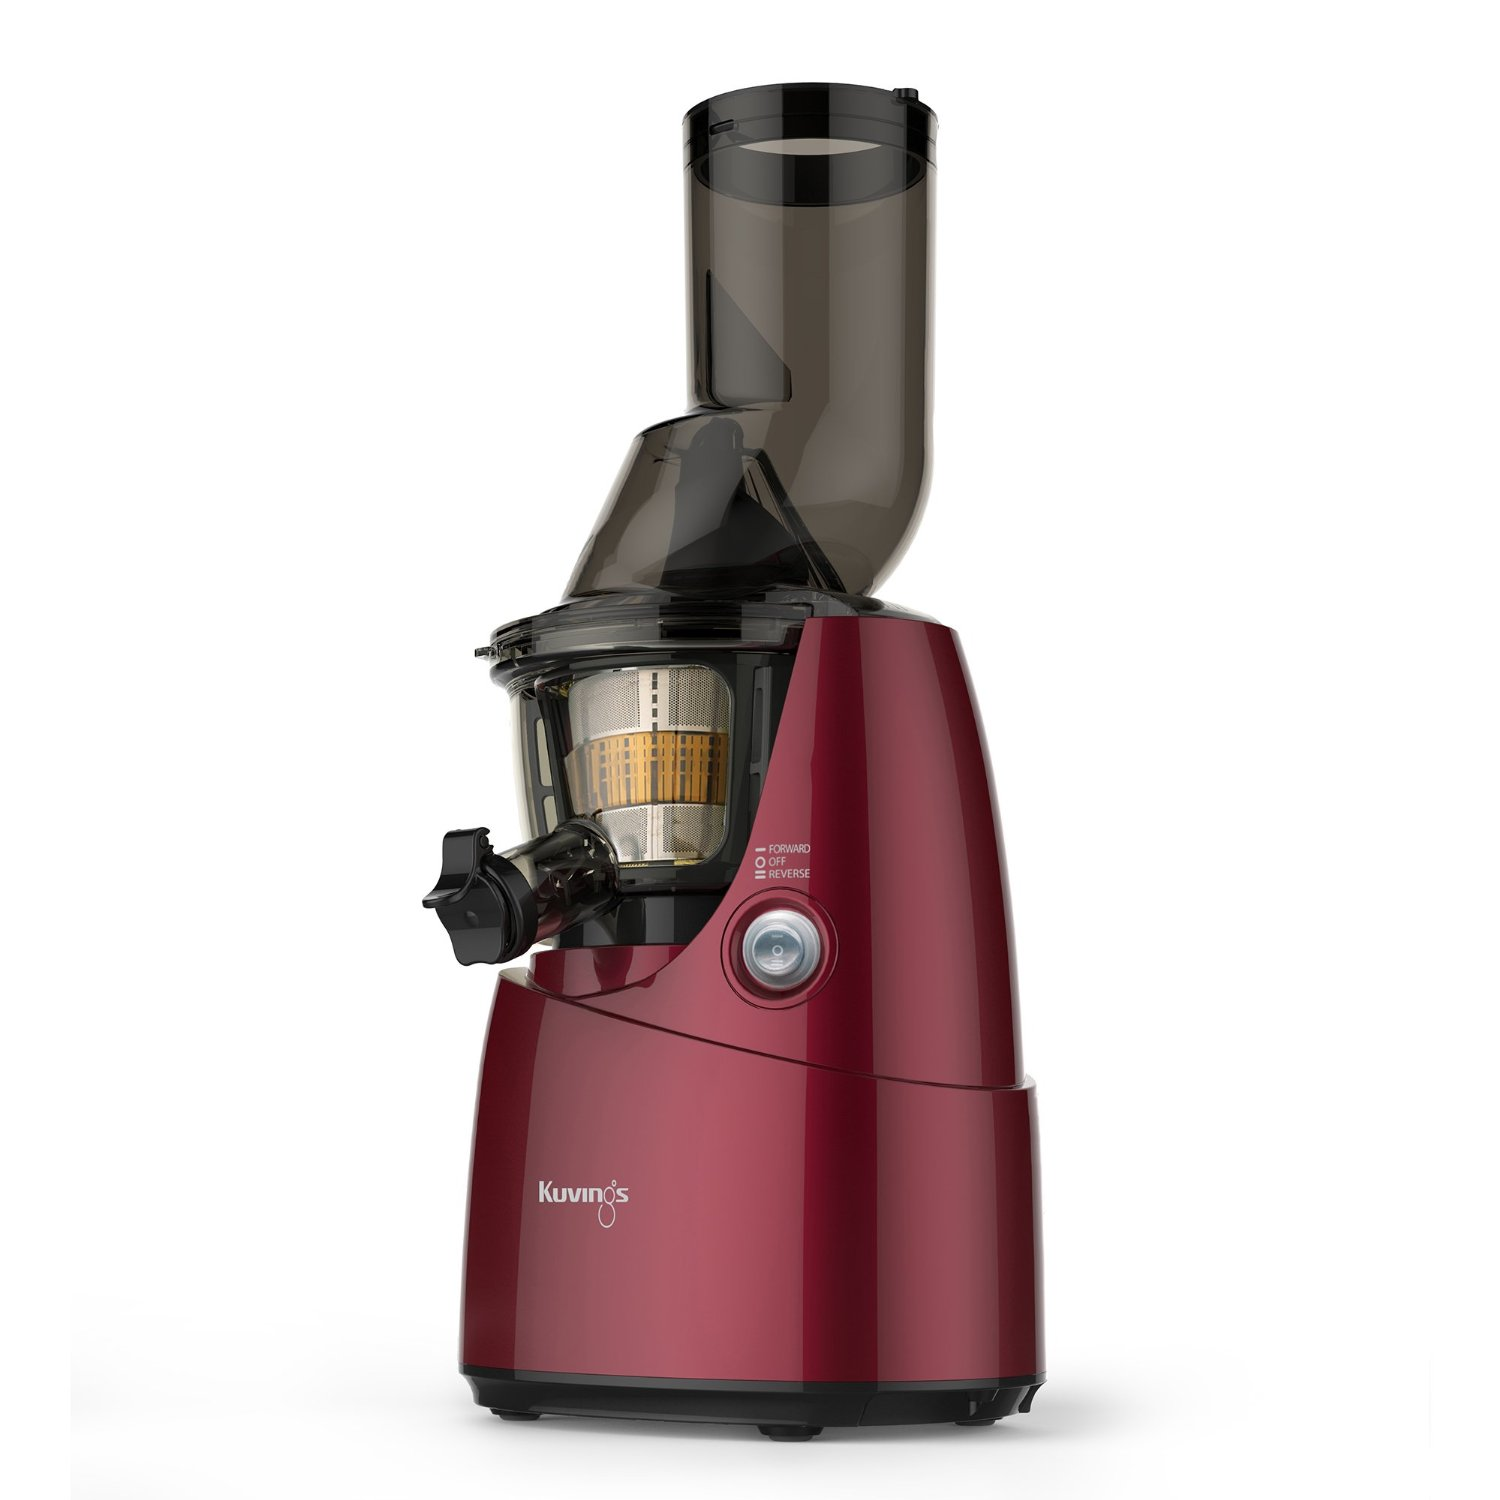 Kuvings Upright Juicer Vs Hurom Slow Juicer : Kuvings B6000 Upright Slow Silent Masticating Juicer Review